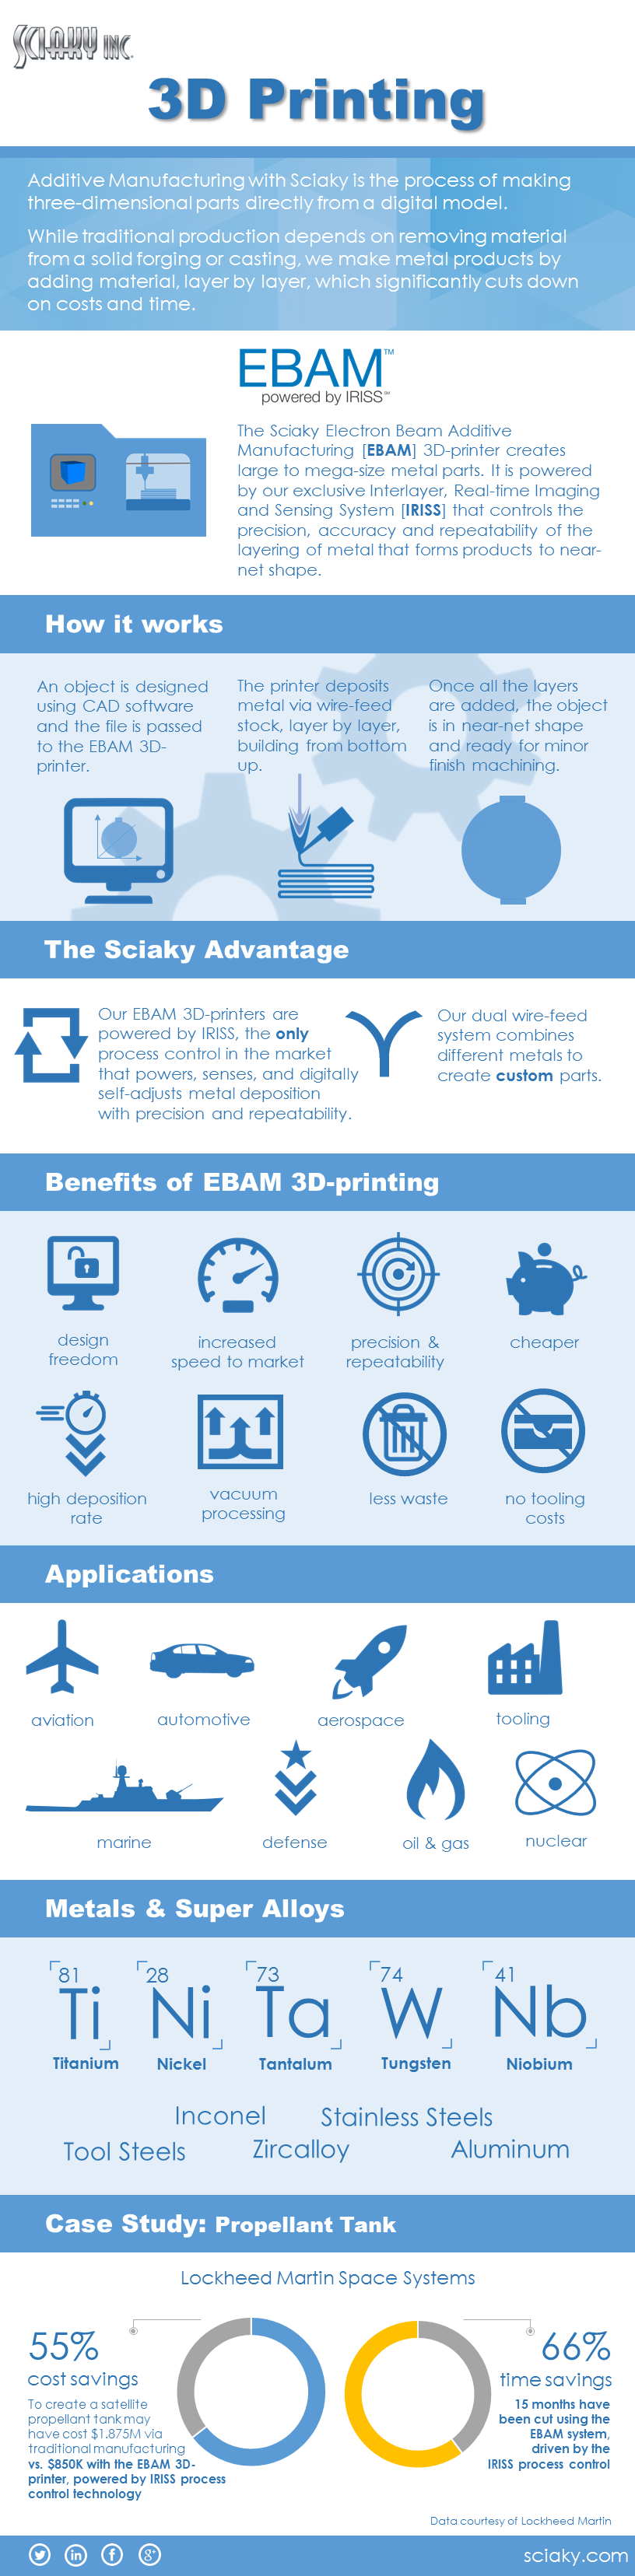 How Electron Beam Additive Manufacturing Works